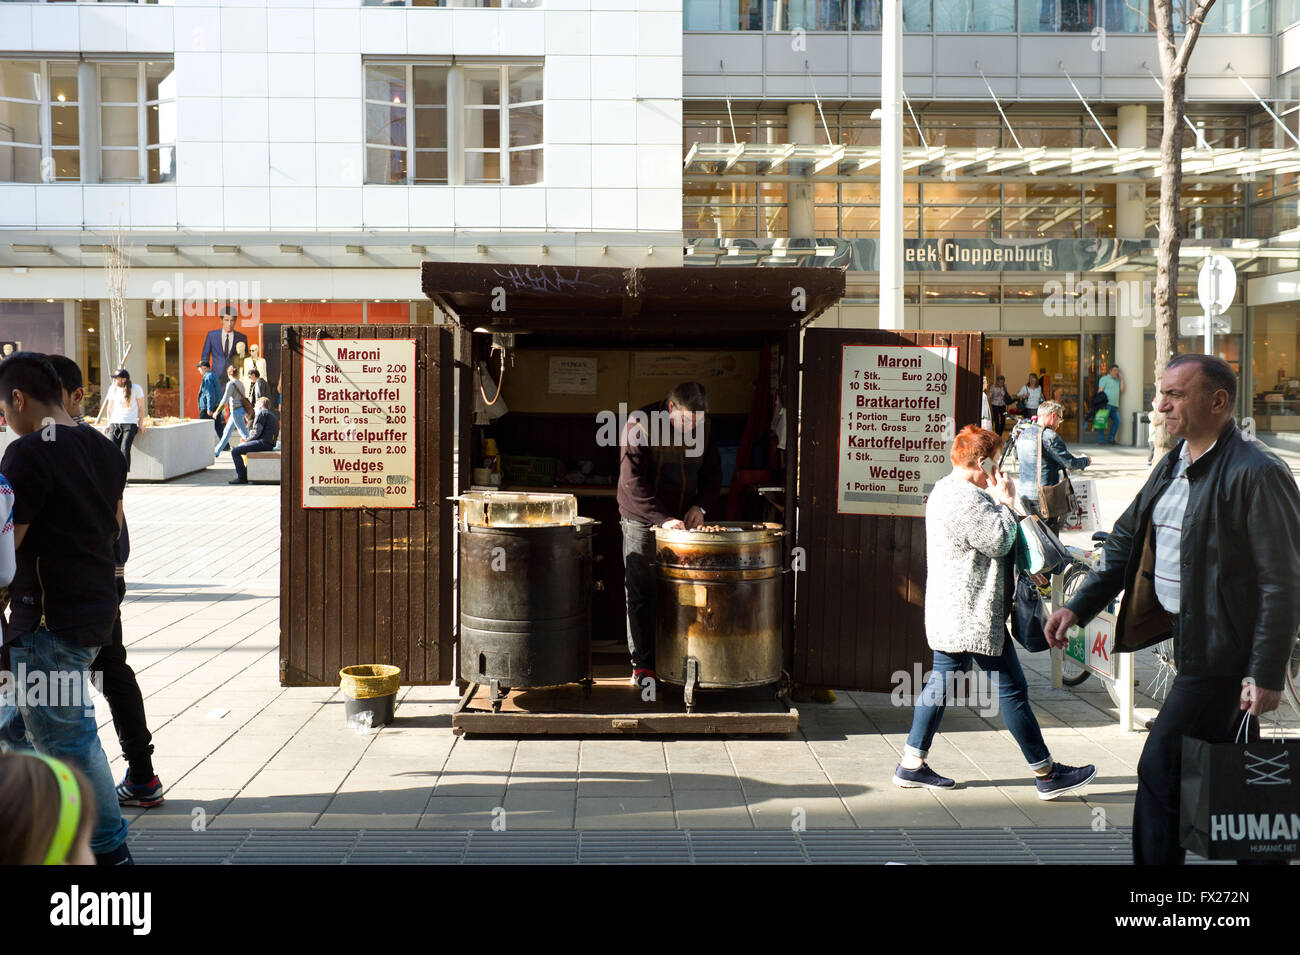 Failing to sell chestnuts on a hot day. Mariahilfer Strase Vienna - Stock Image